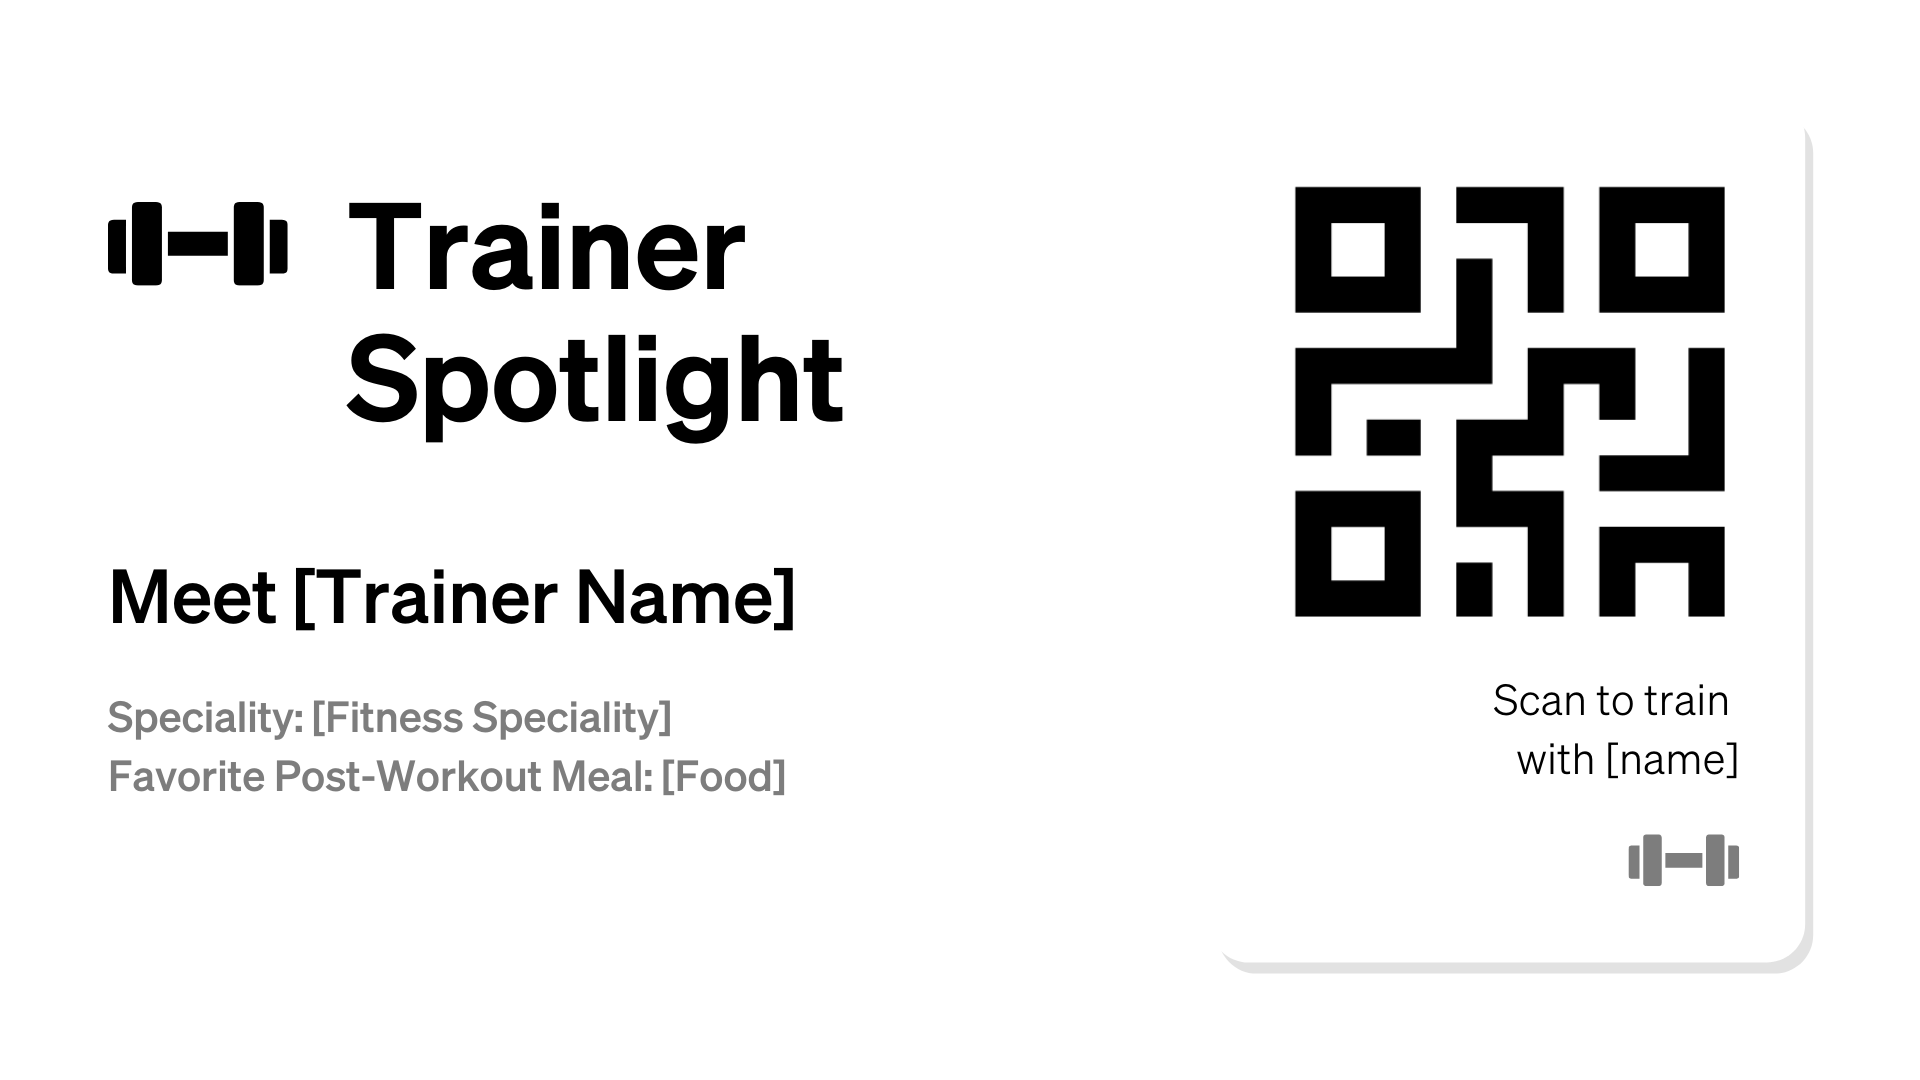 Trainer Spotlight